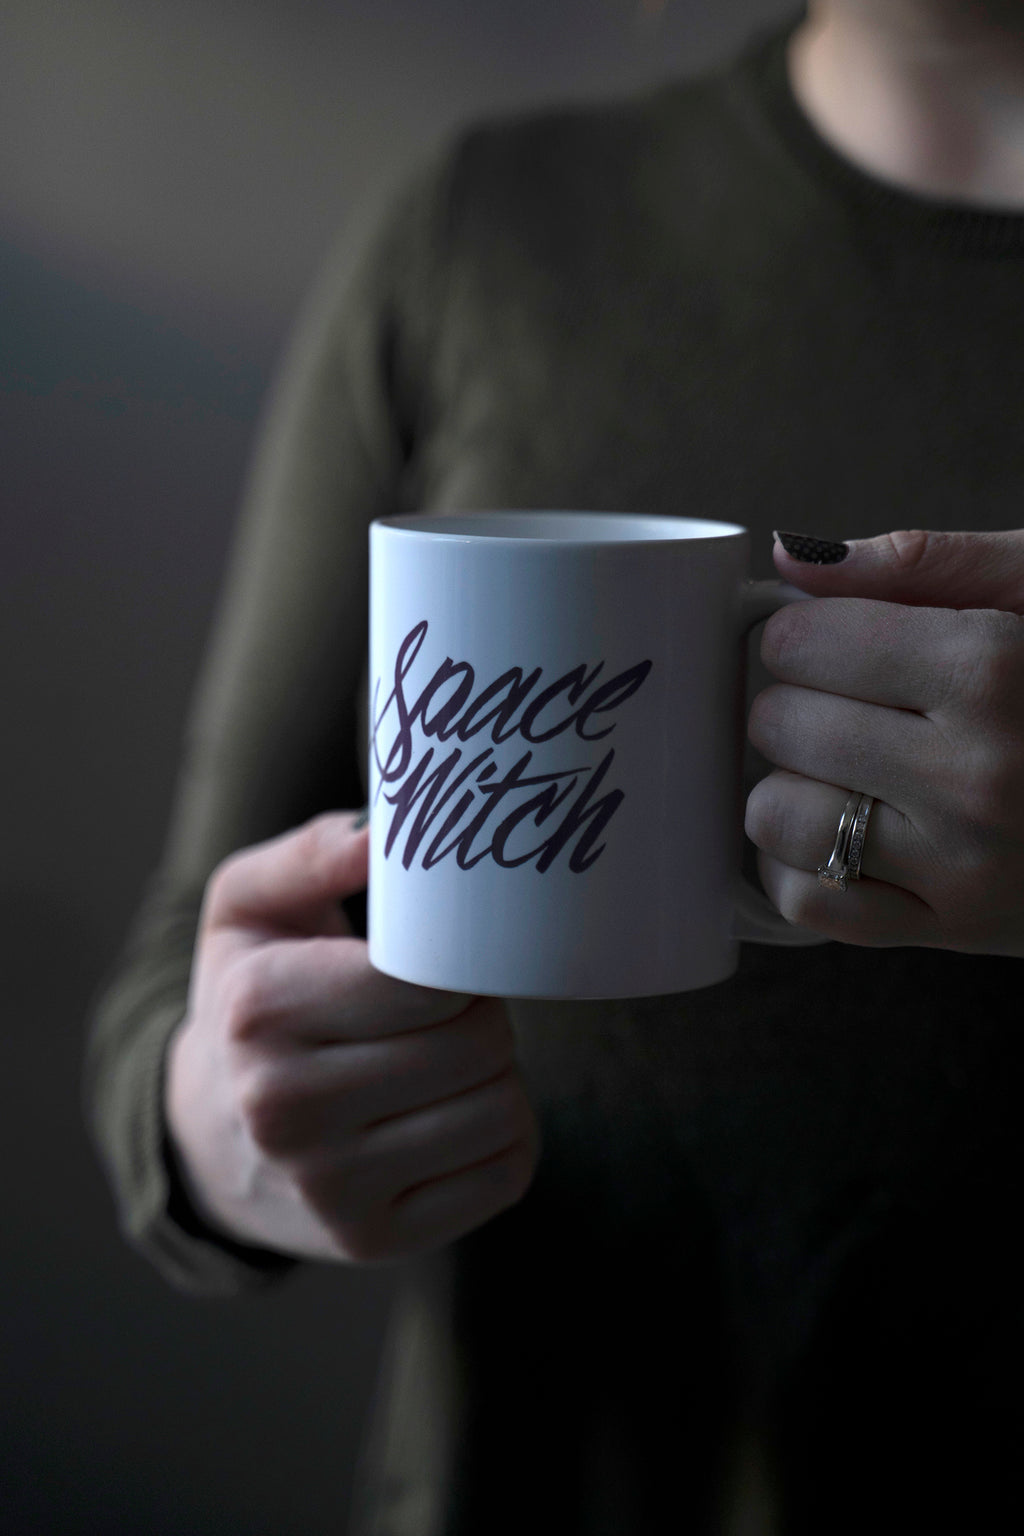 Space Witch Mug | Fangirl Galaxy Collection